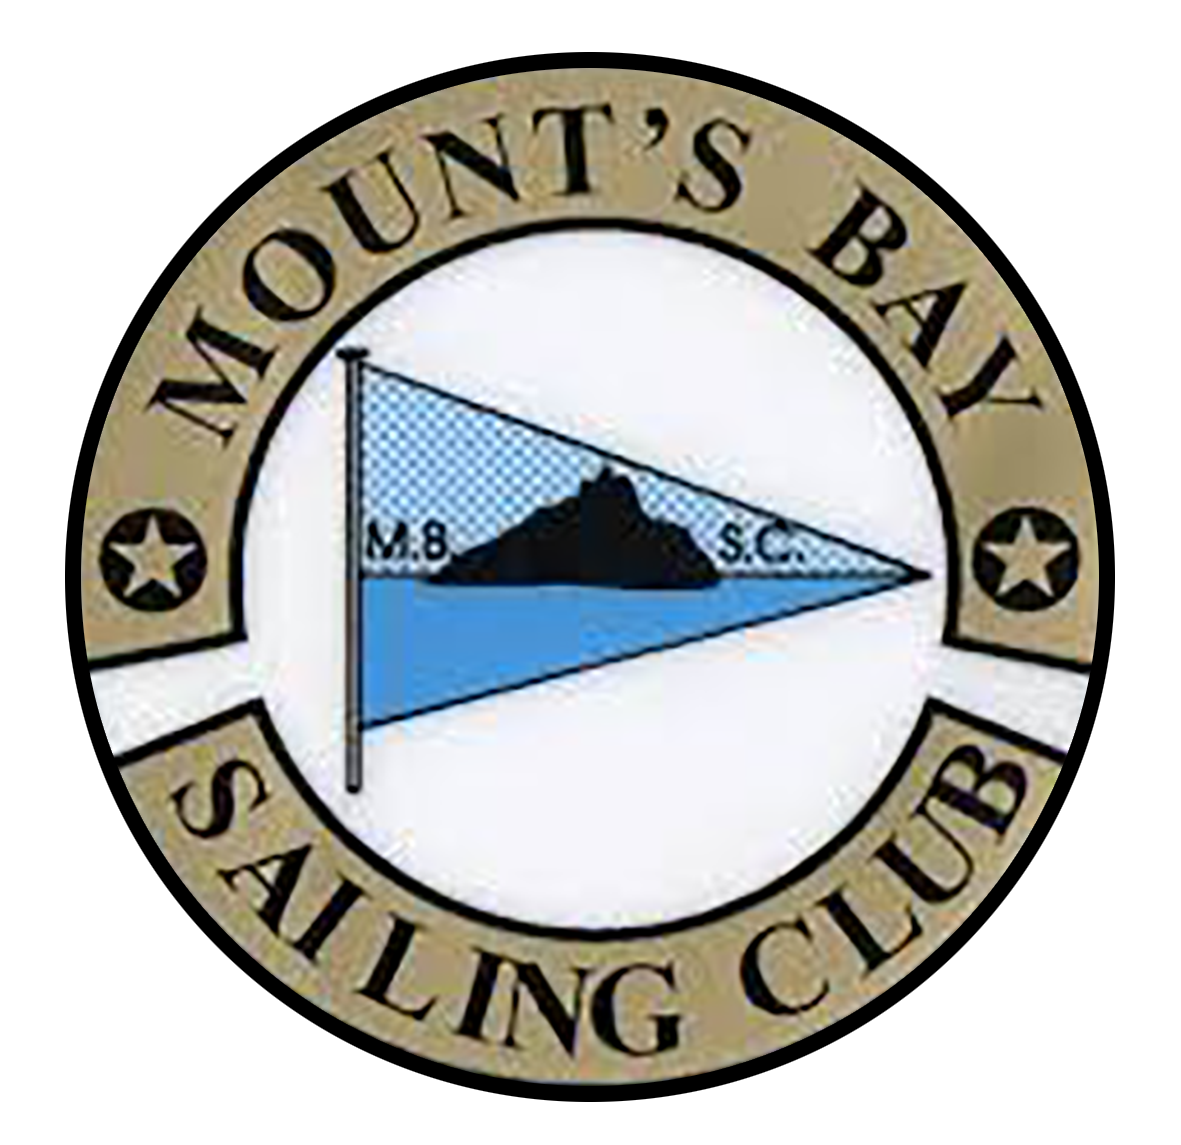 Mount's Bay Sailing Club